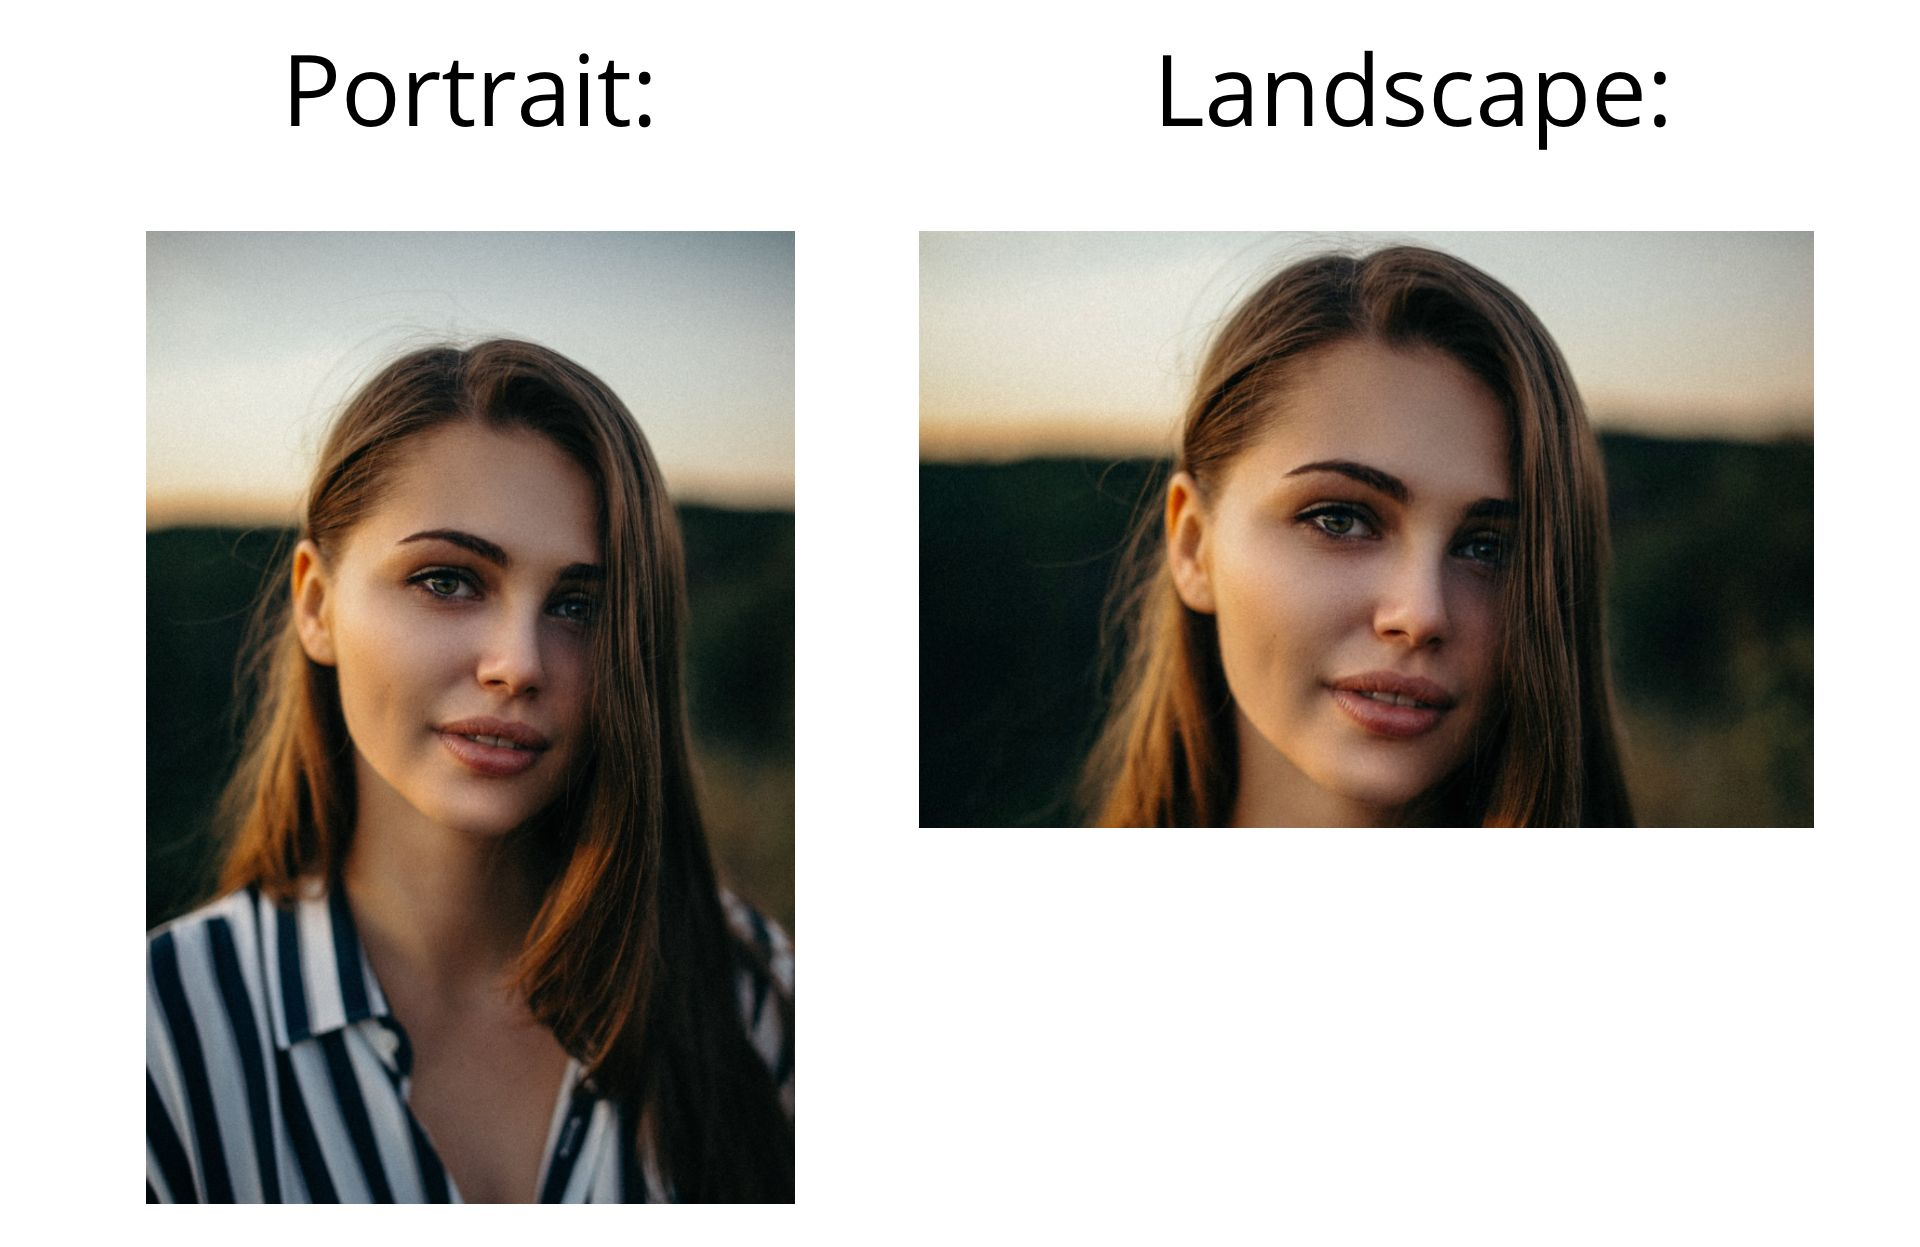 A portrait of a woman  in portrait and landscape orientations, showing the visual makeup of different aspect ratios.